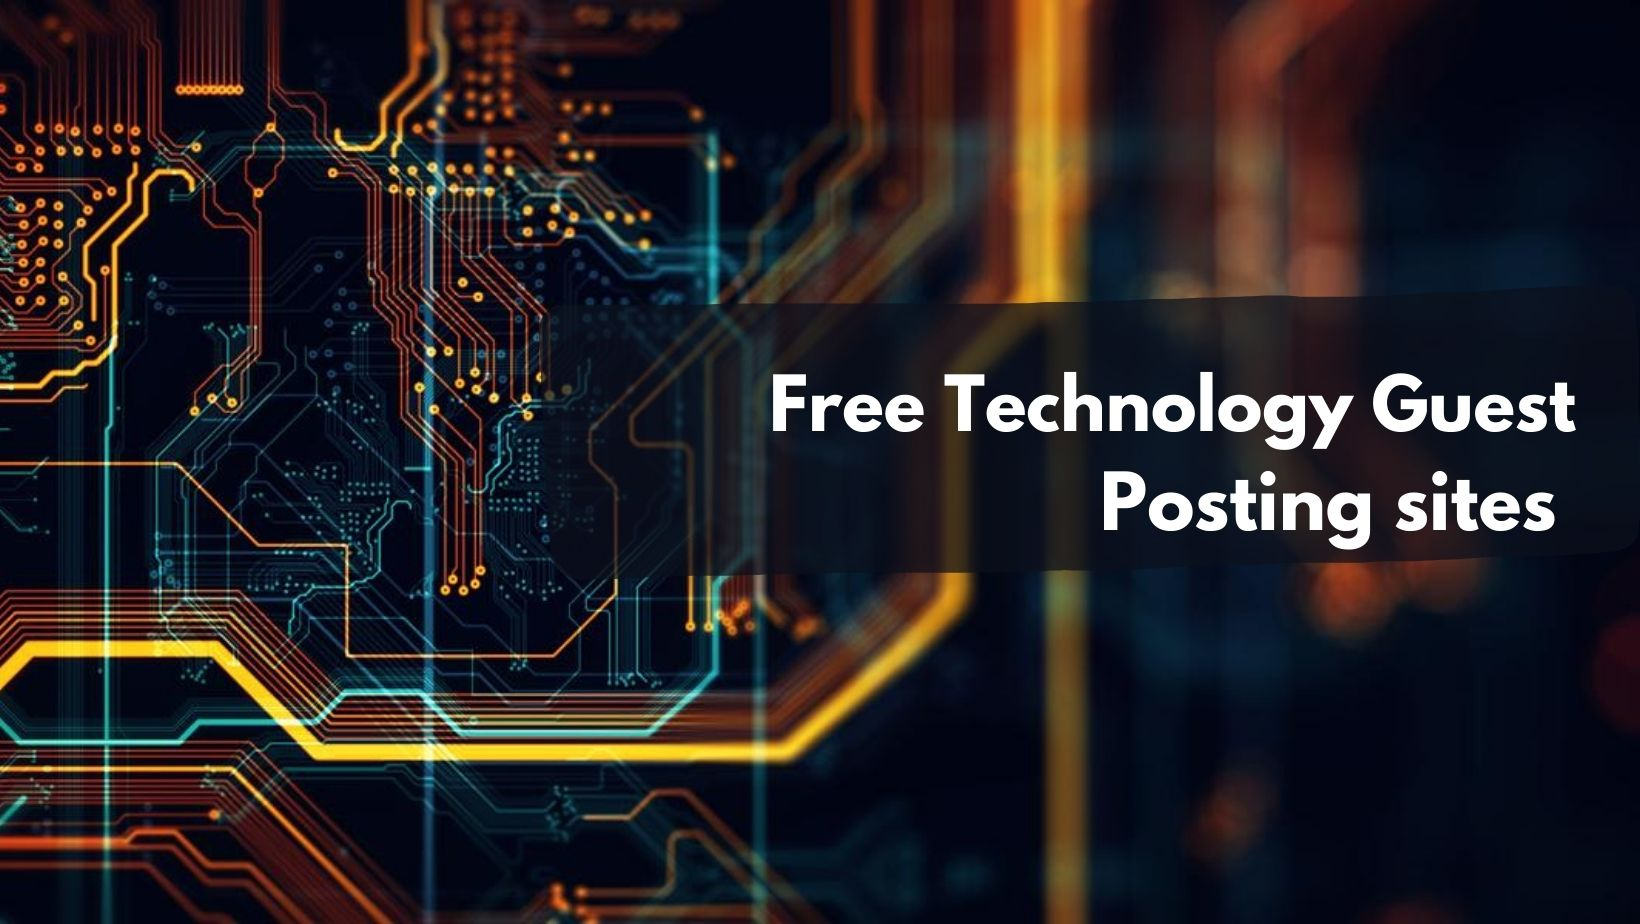 Free Technology Guest Posting sites